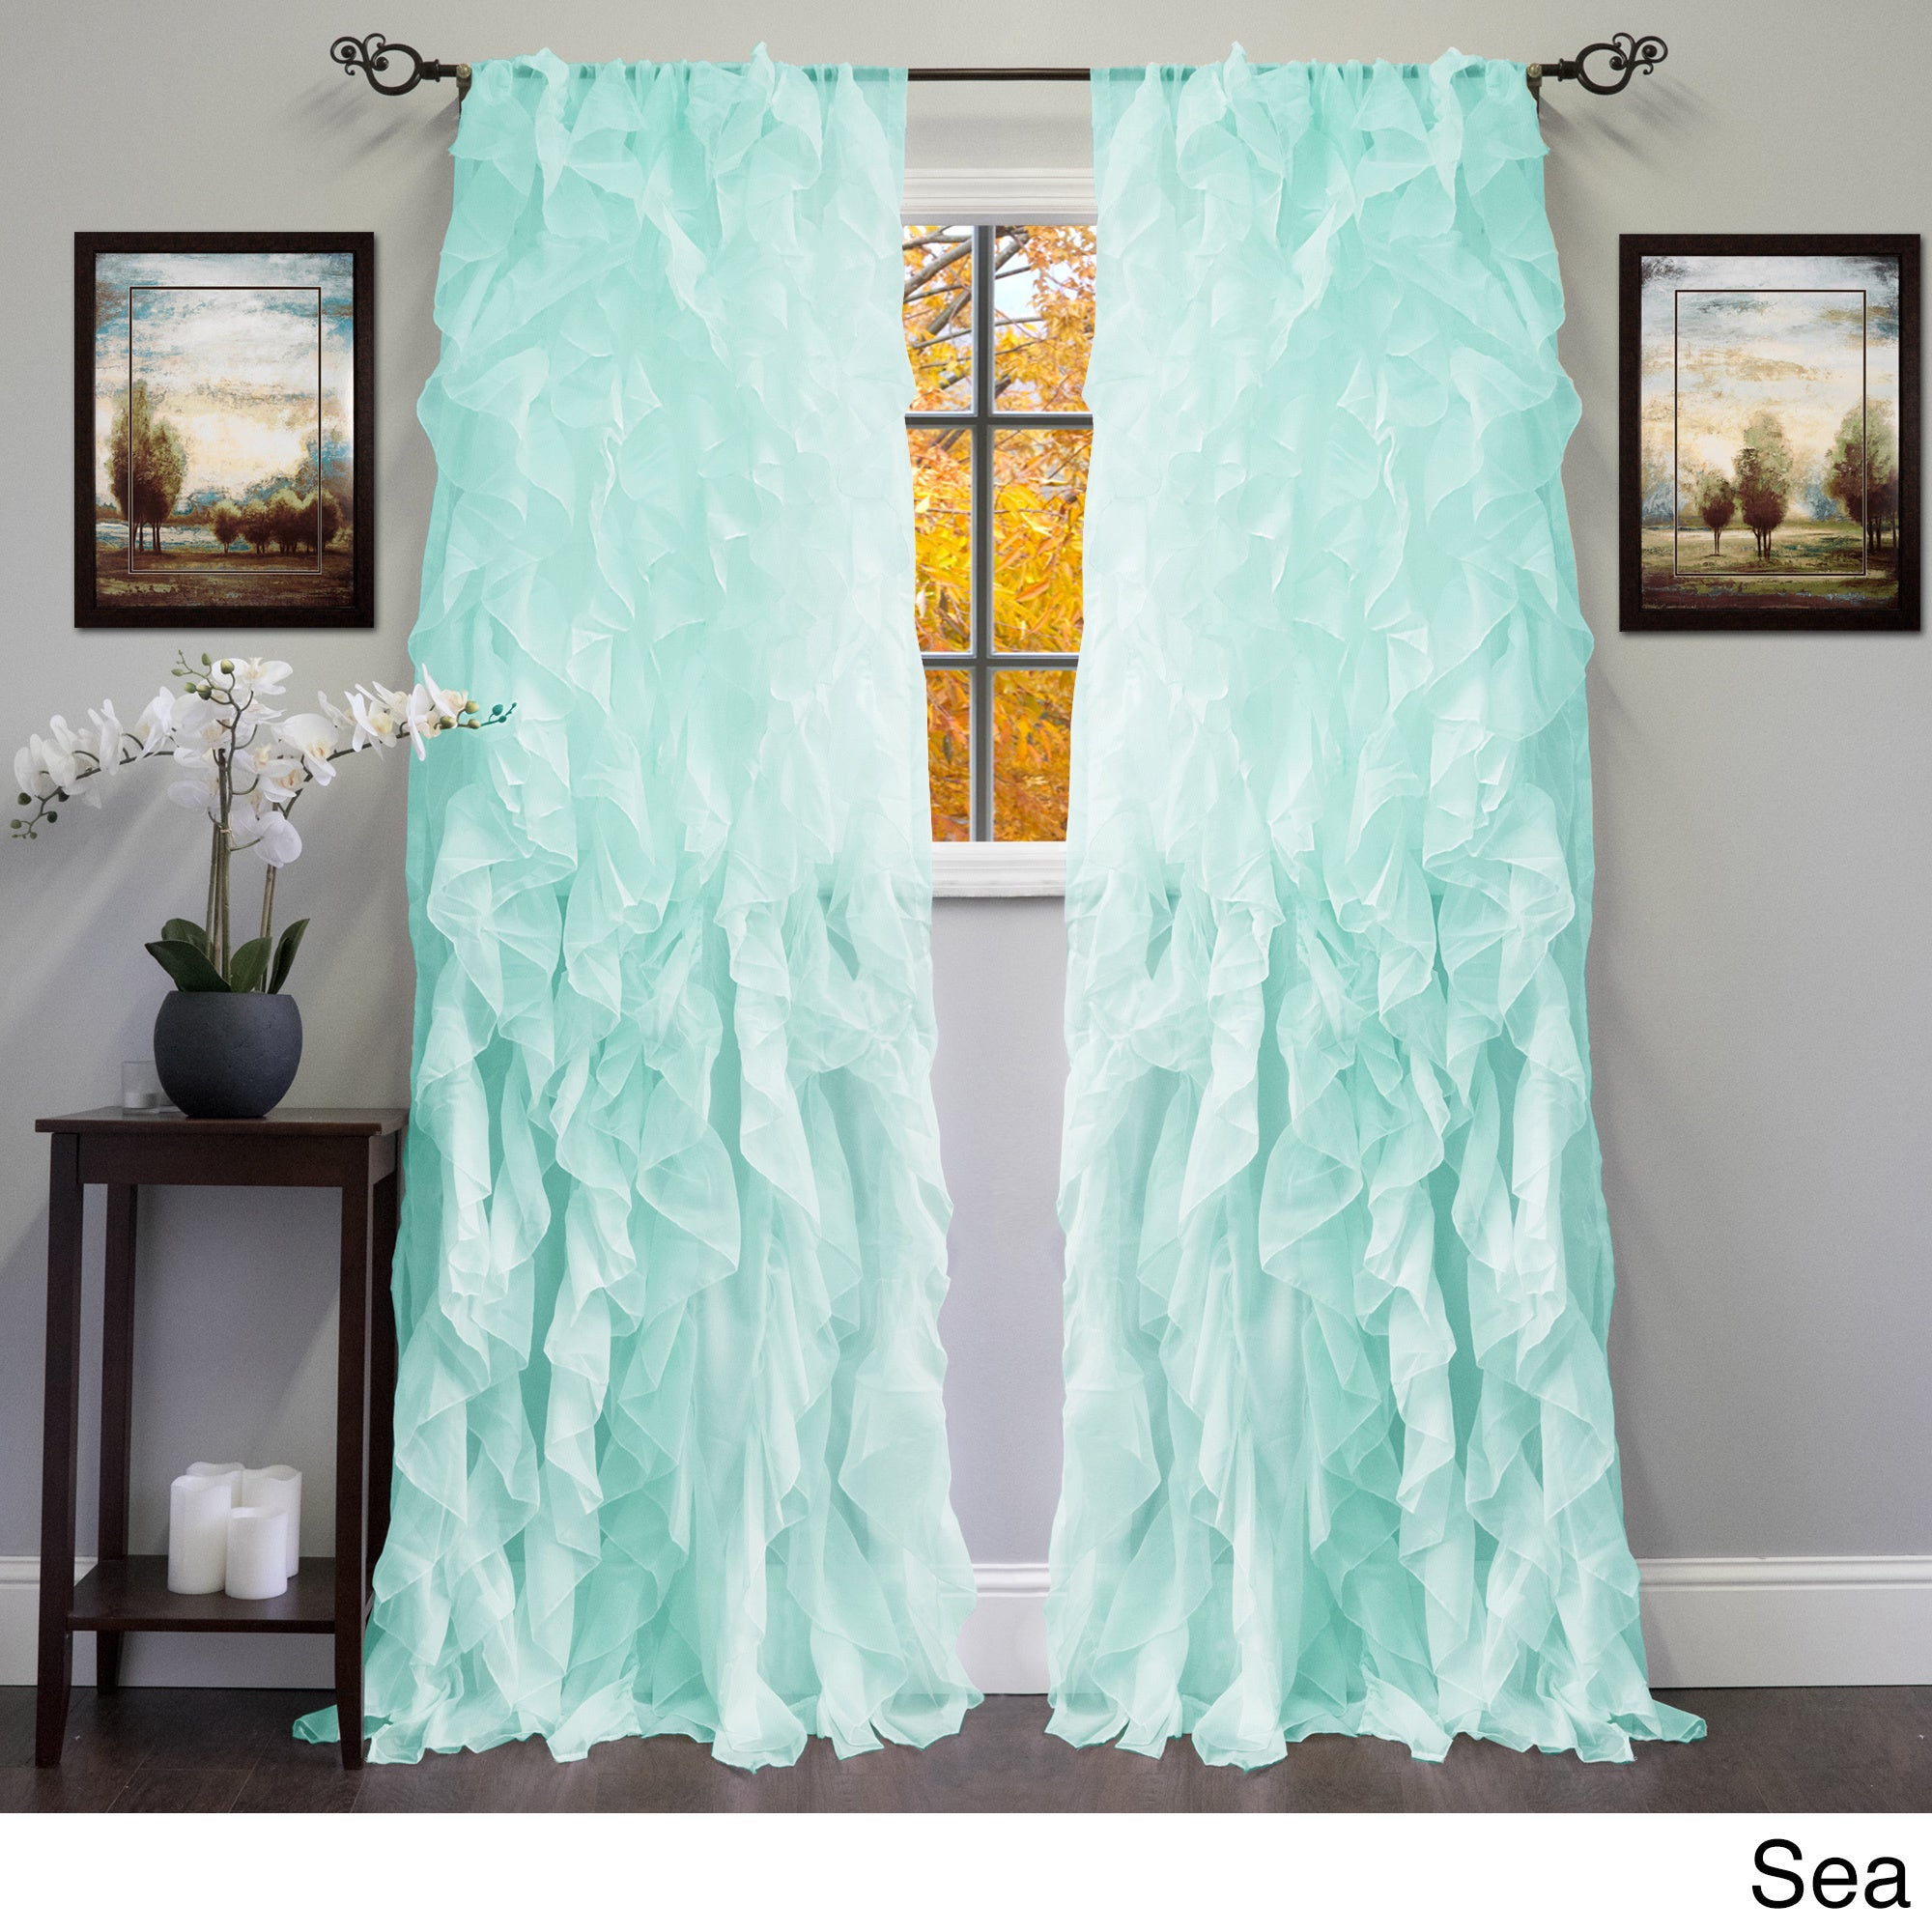 Shop Sheer Voile Ruffled Tier Window Curtain Panel - 50 x 84 - On ...